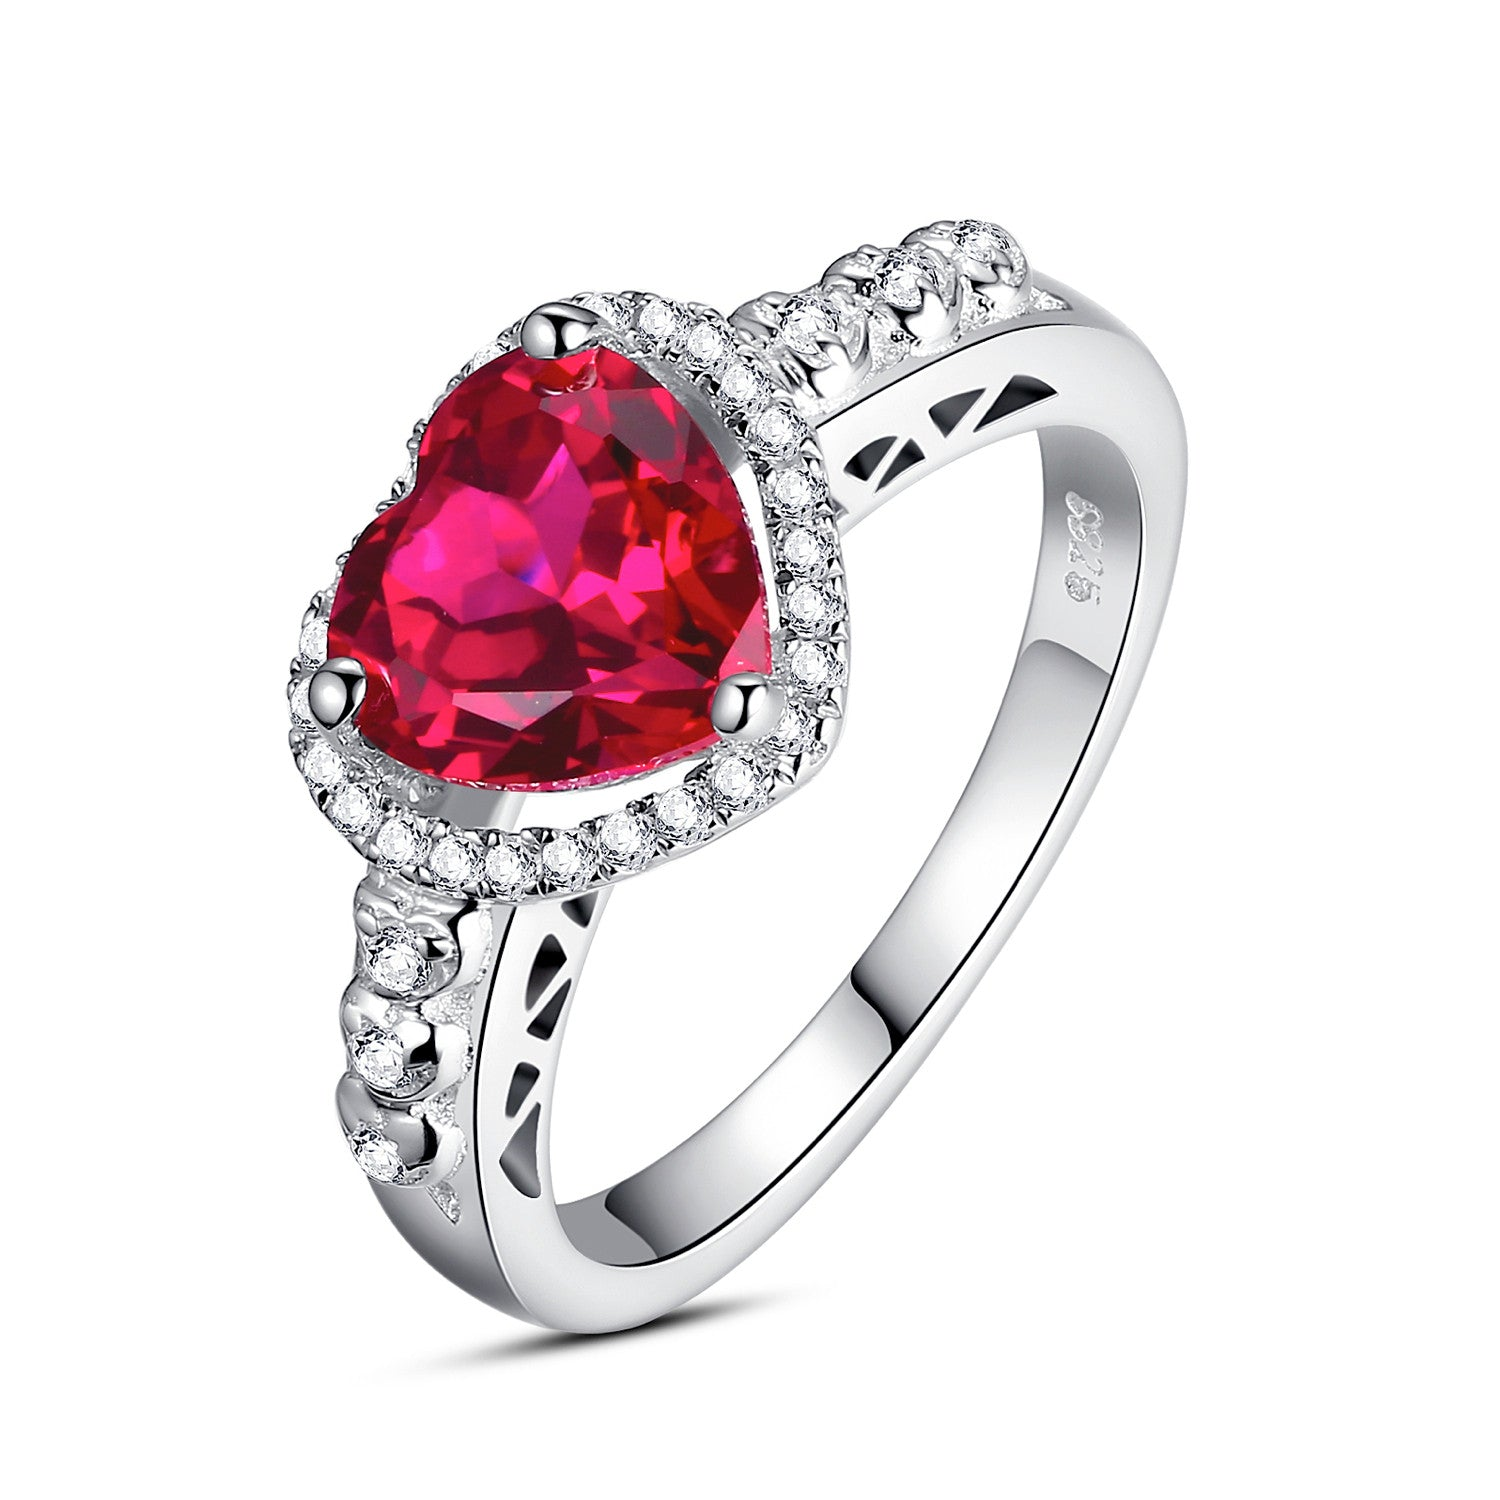 diamond rings aaa engagement and solitaire natural ring ruby yg three stone eternity